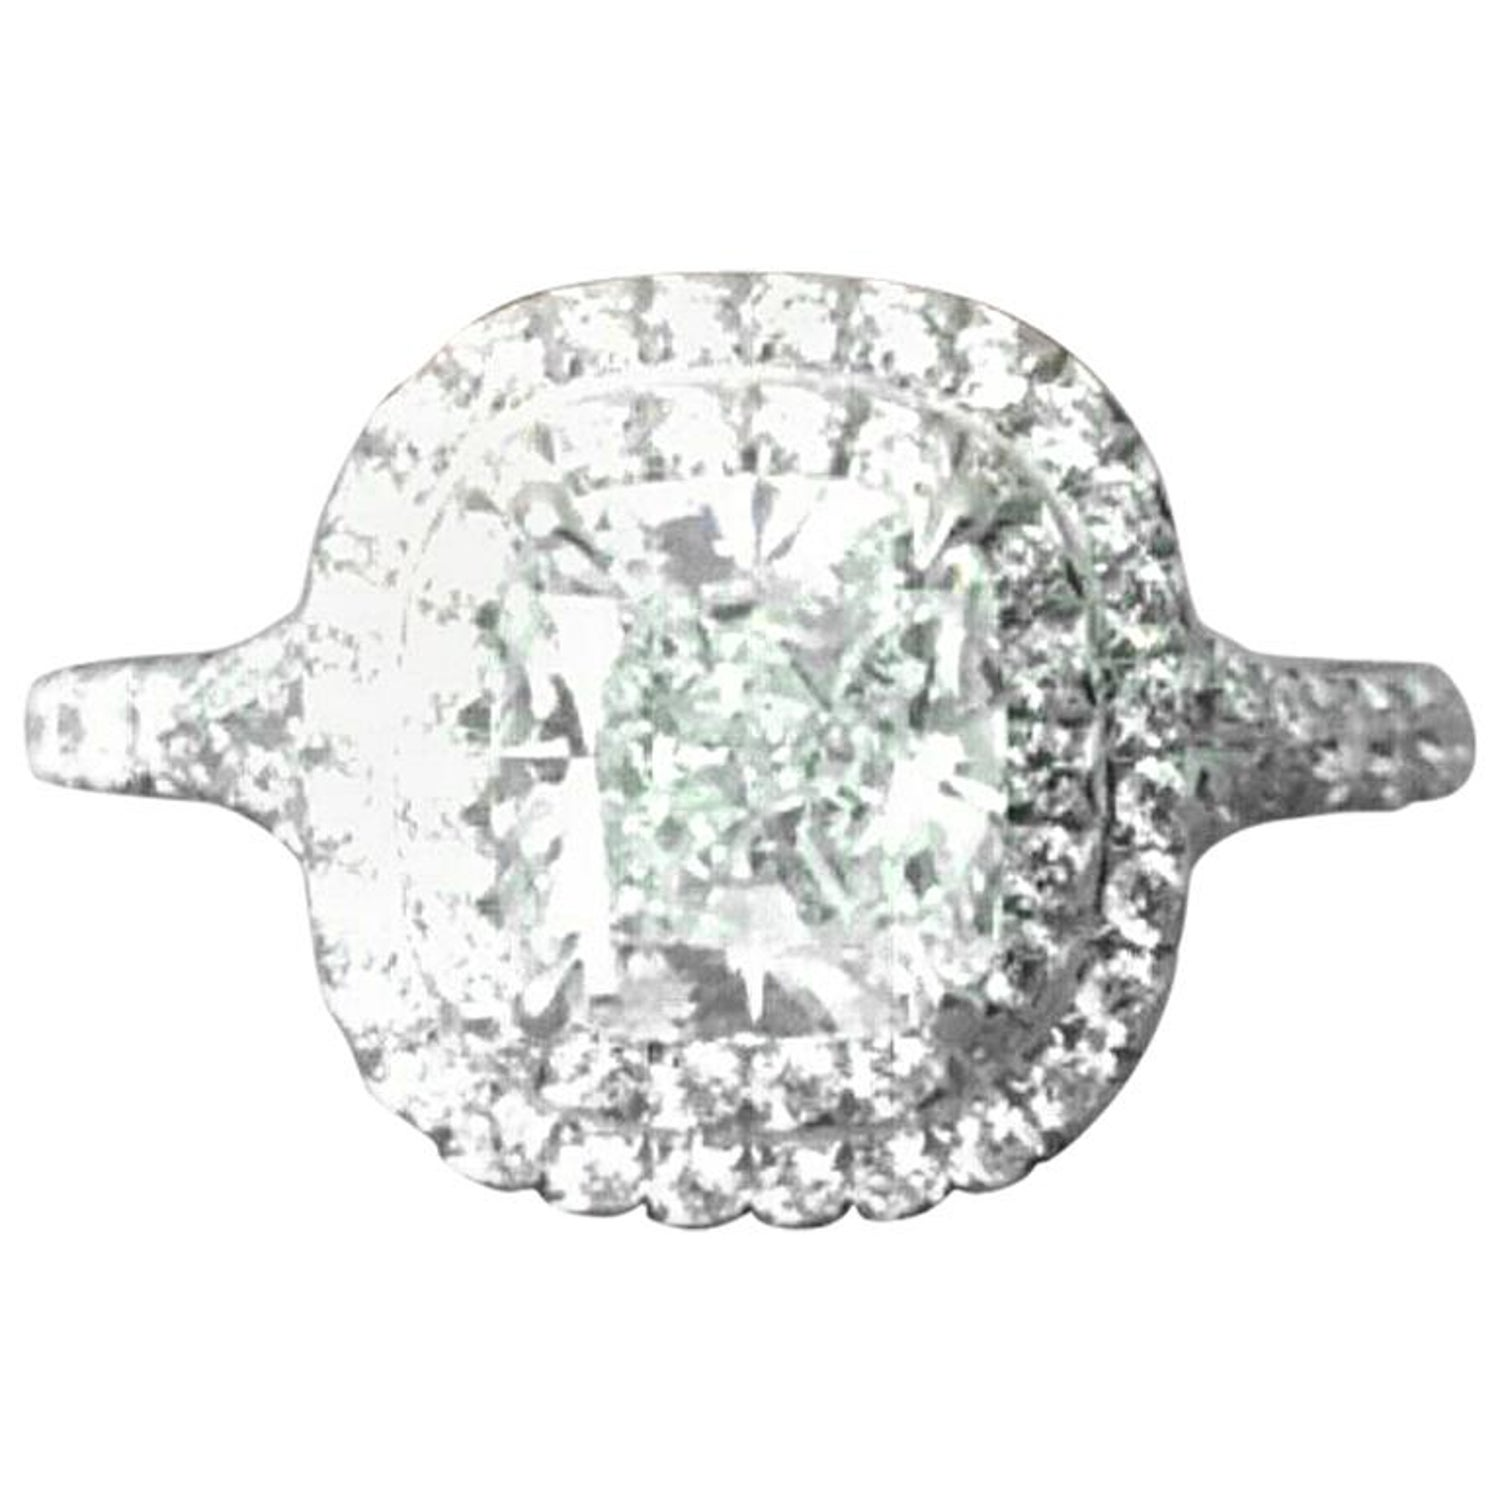 aef8b1985 Tiffany and Co Soleste Platinum and Diamond 1.28 Carat H Internal Flawless  at 1stdibs